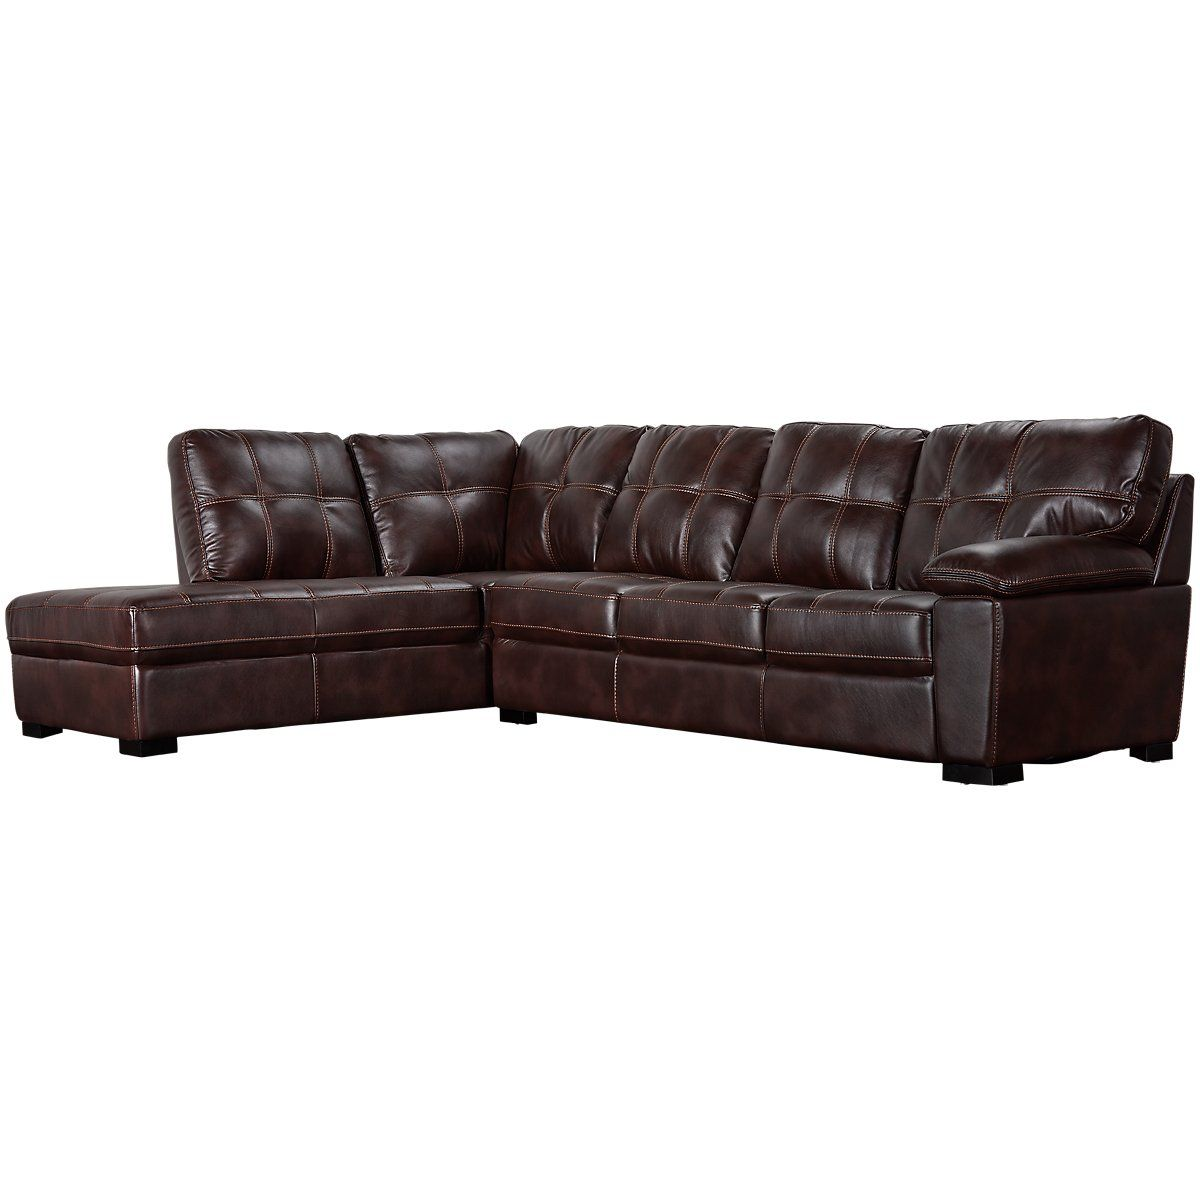 Henry Dark Brown Microfiber Left Bumper Sectional Living Room Sectional Furniture Living